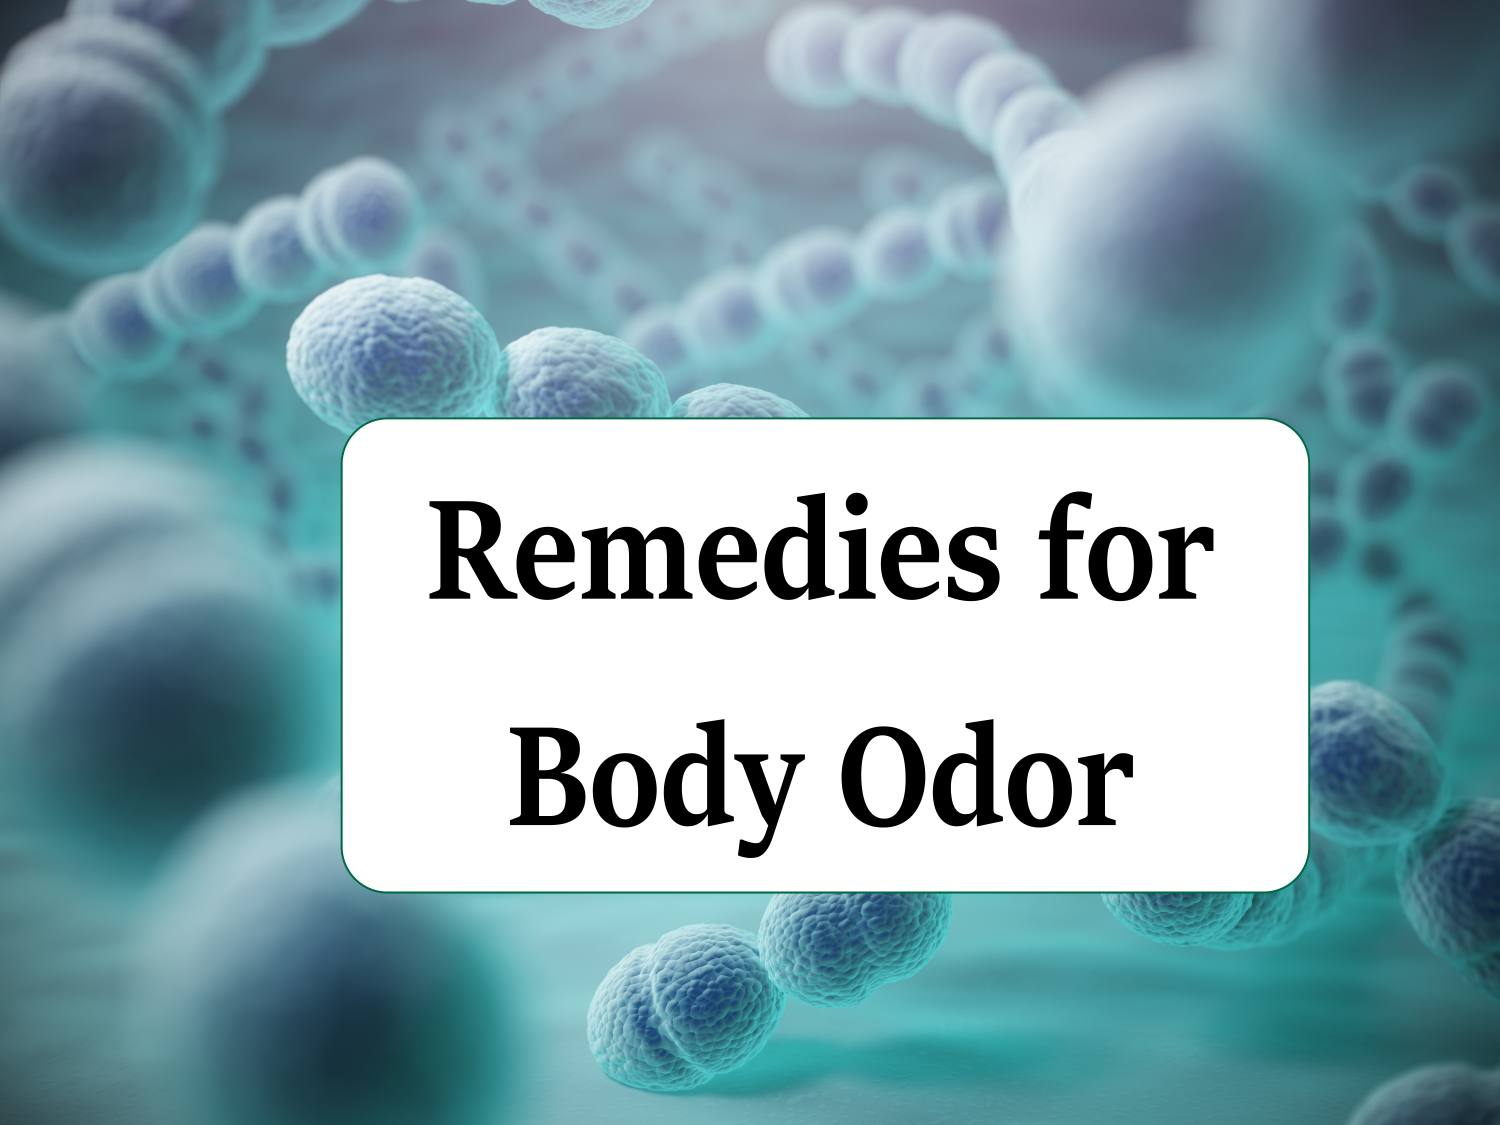 10 Home Remedies for Body Odor